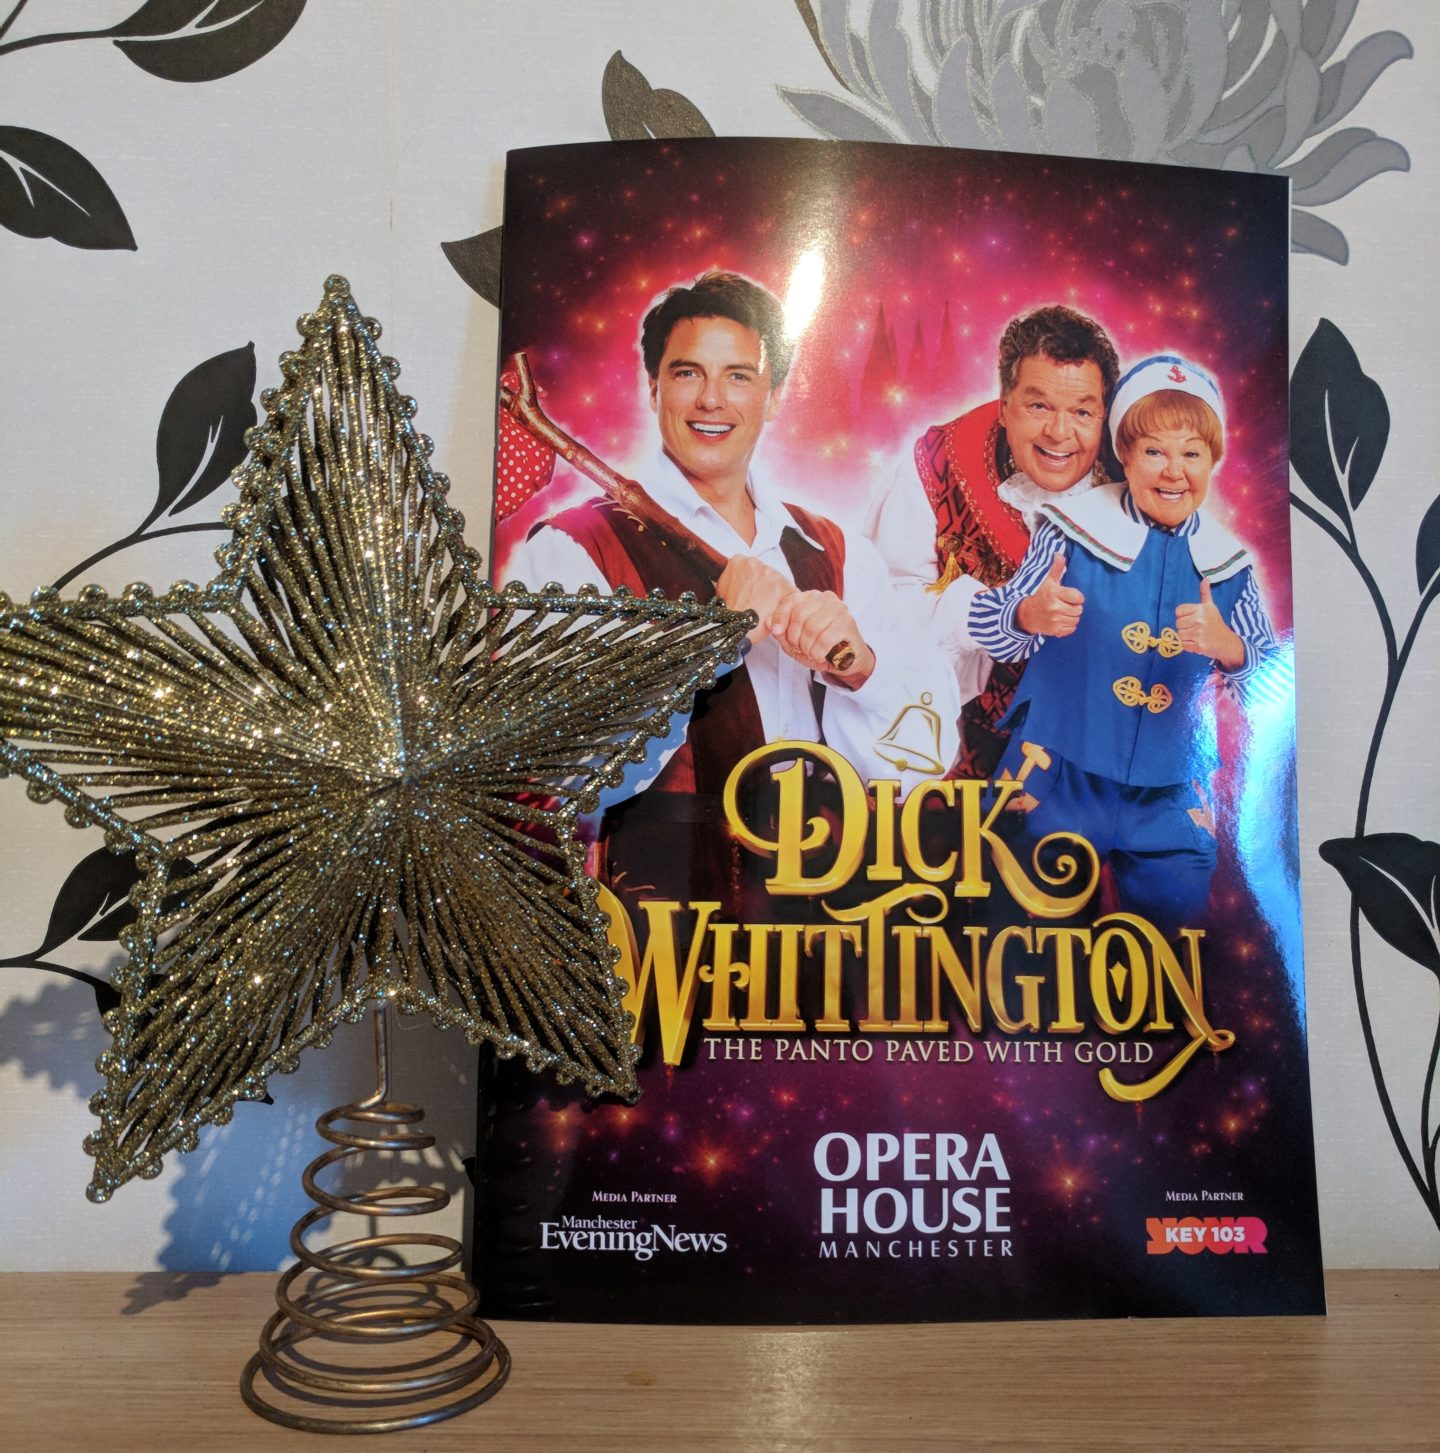 Dick Whittington Panto Review!